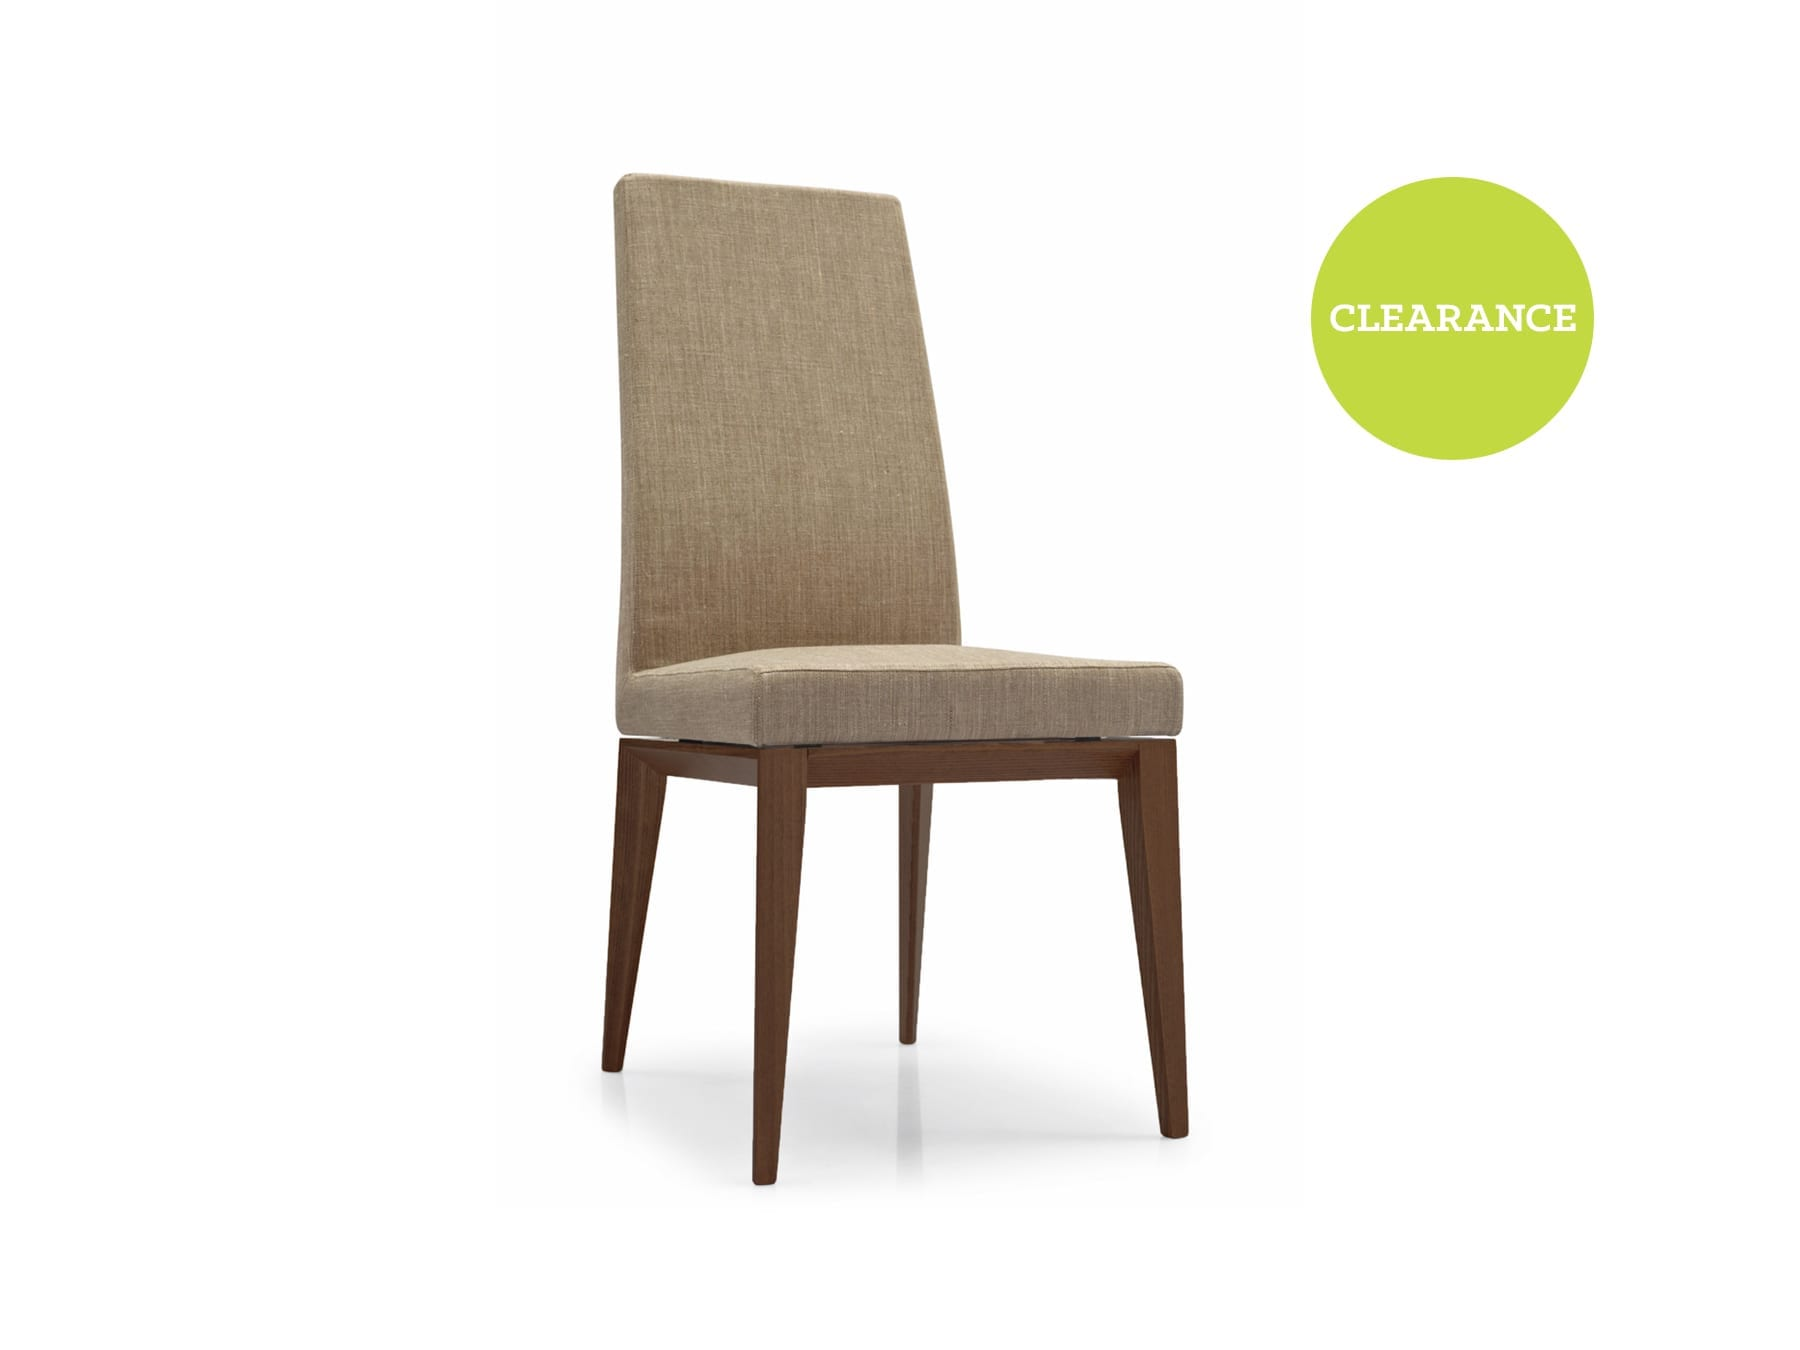 Calligaris Bess Dining Chair in Brighton Cord available at McKenzie & Willis